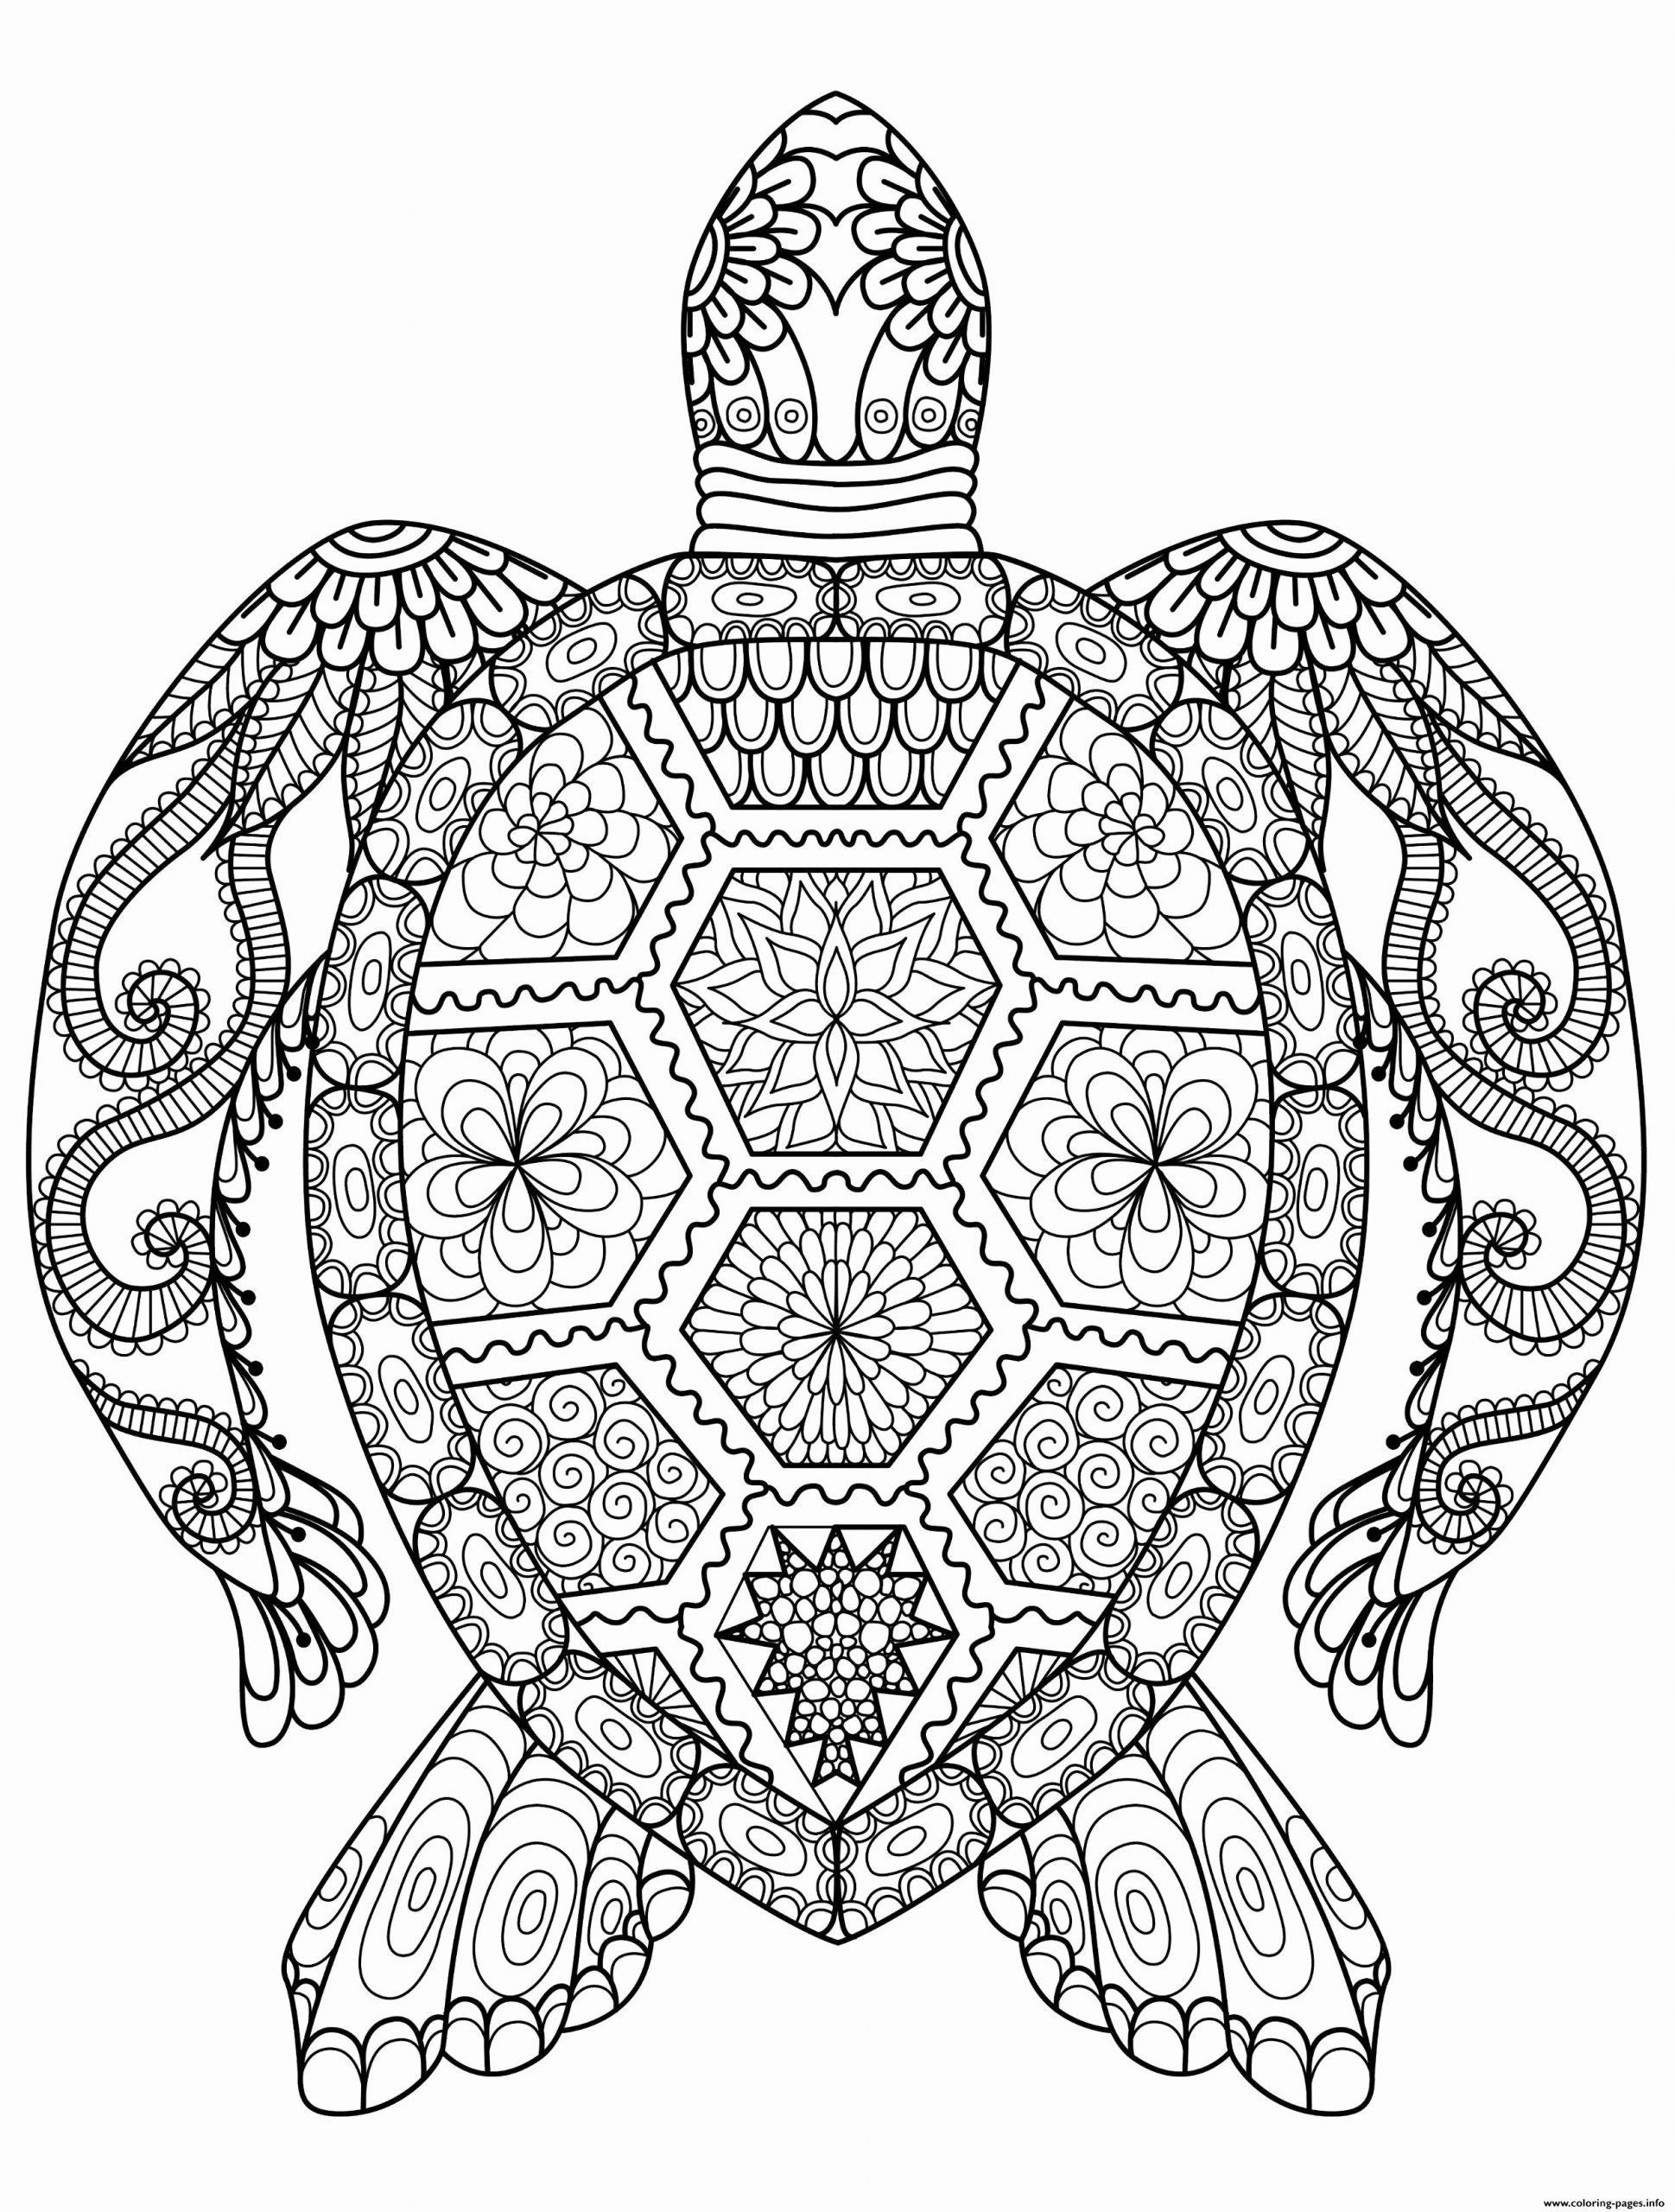 Advanced Online Coloring Pages Bowo Best Turtle Coloring Pages Colouring Sheets For Adults Mandala Coloring Pages